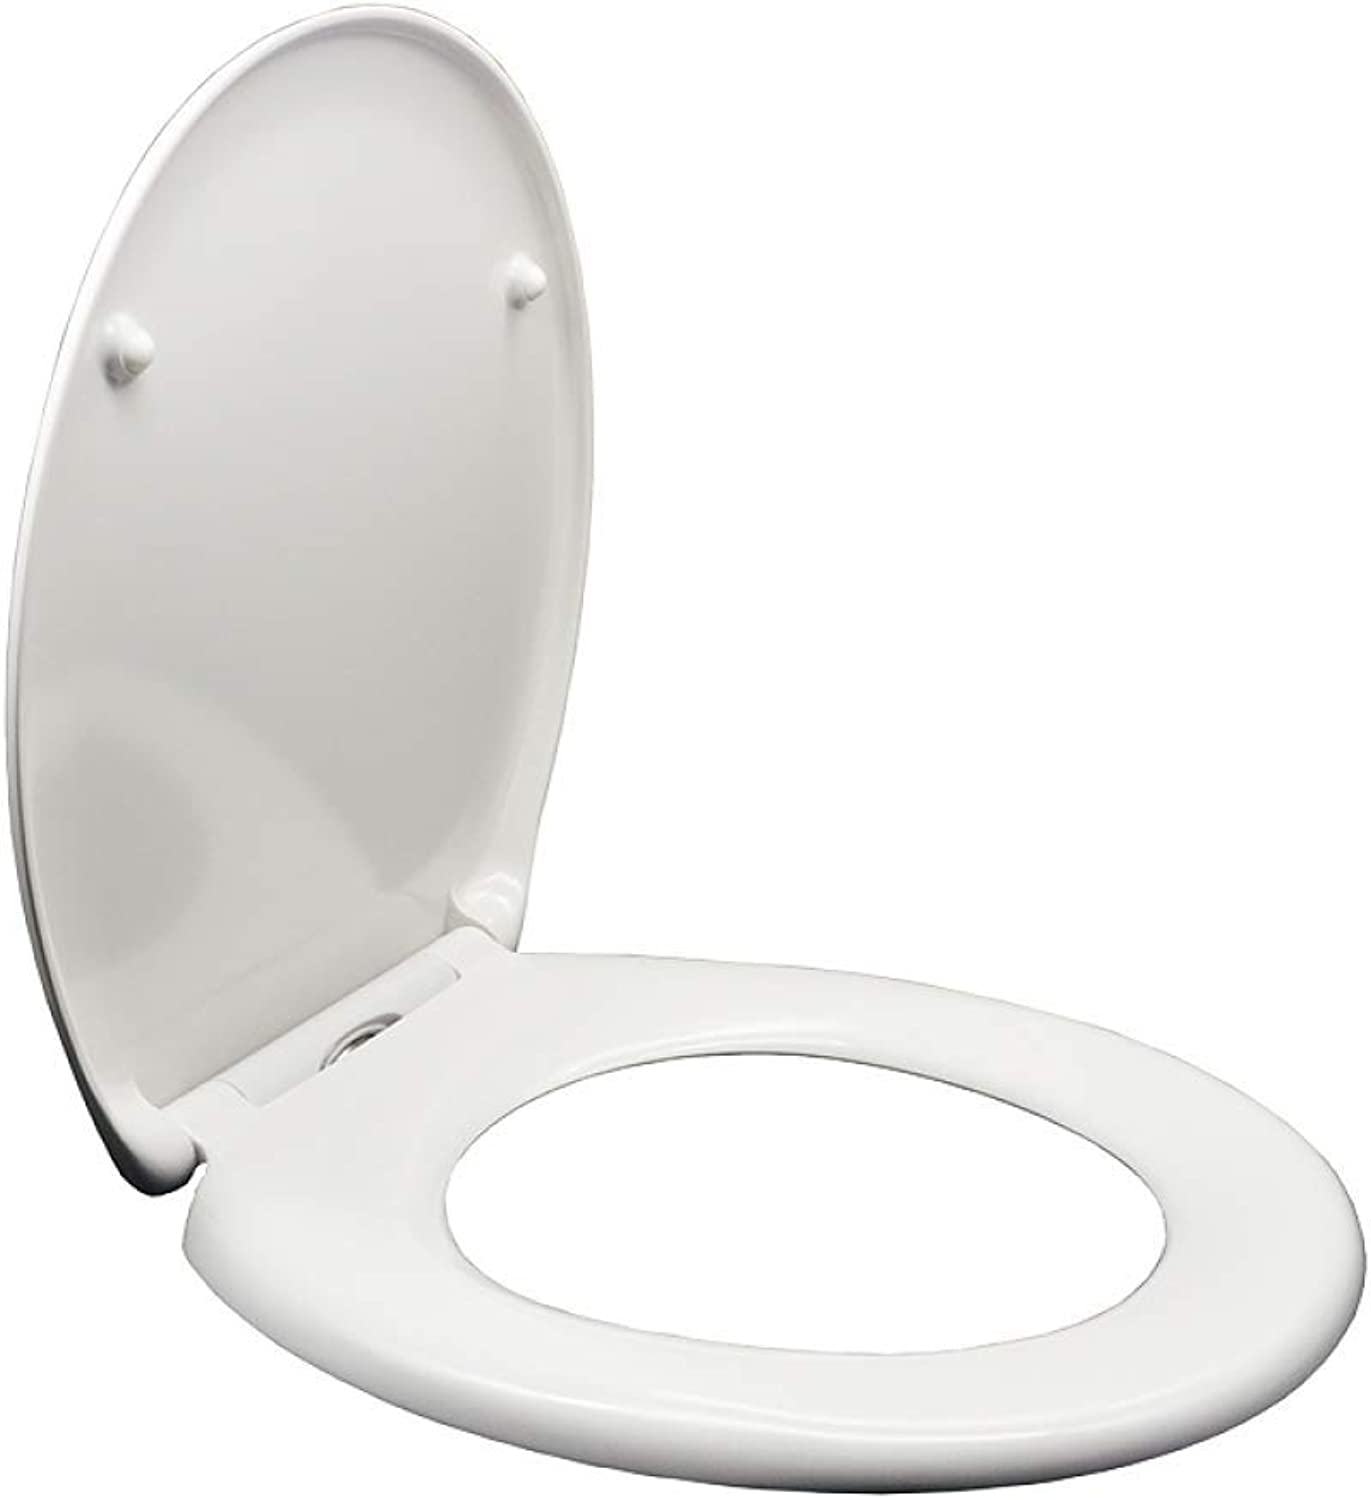 Toilet Lid & Tank Covers U O Shape Square Toilet Lid With Slow Down Top Fixed Toilet Seat Cover For Family Anti-Bacterial Toilet Seat (color   White, Size   D)